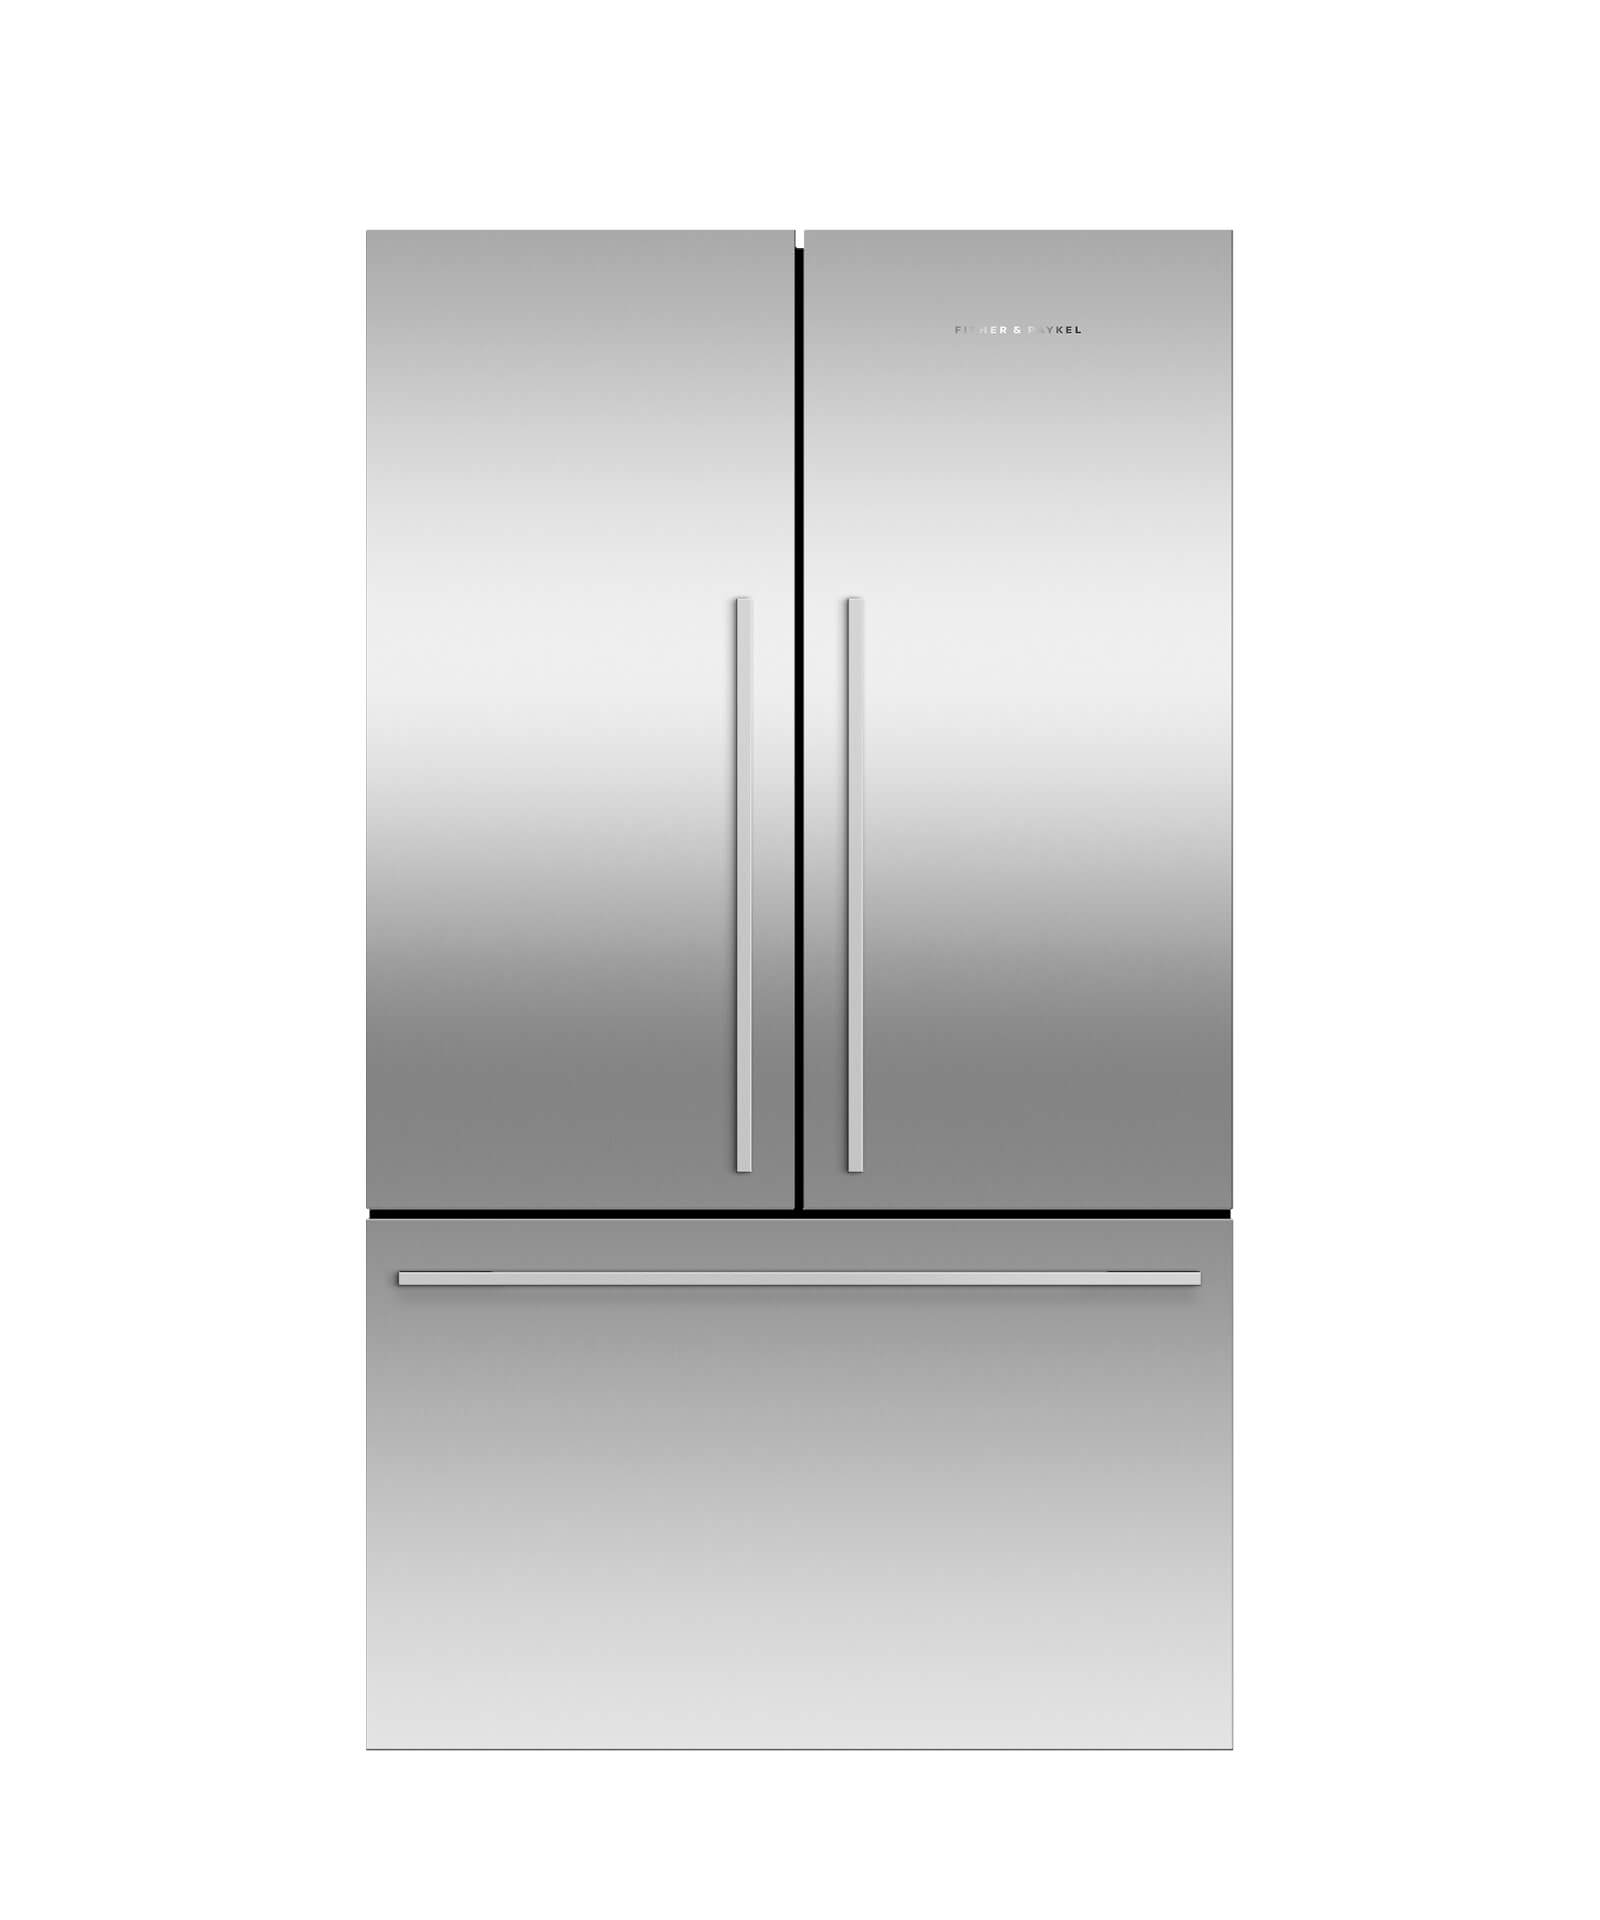 Rf610adx4 Activesmart Fridge